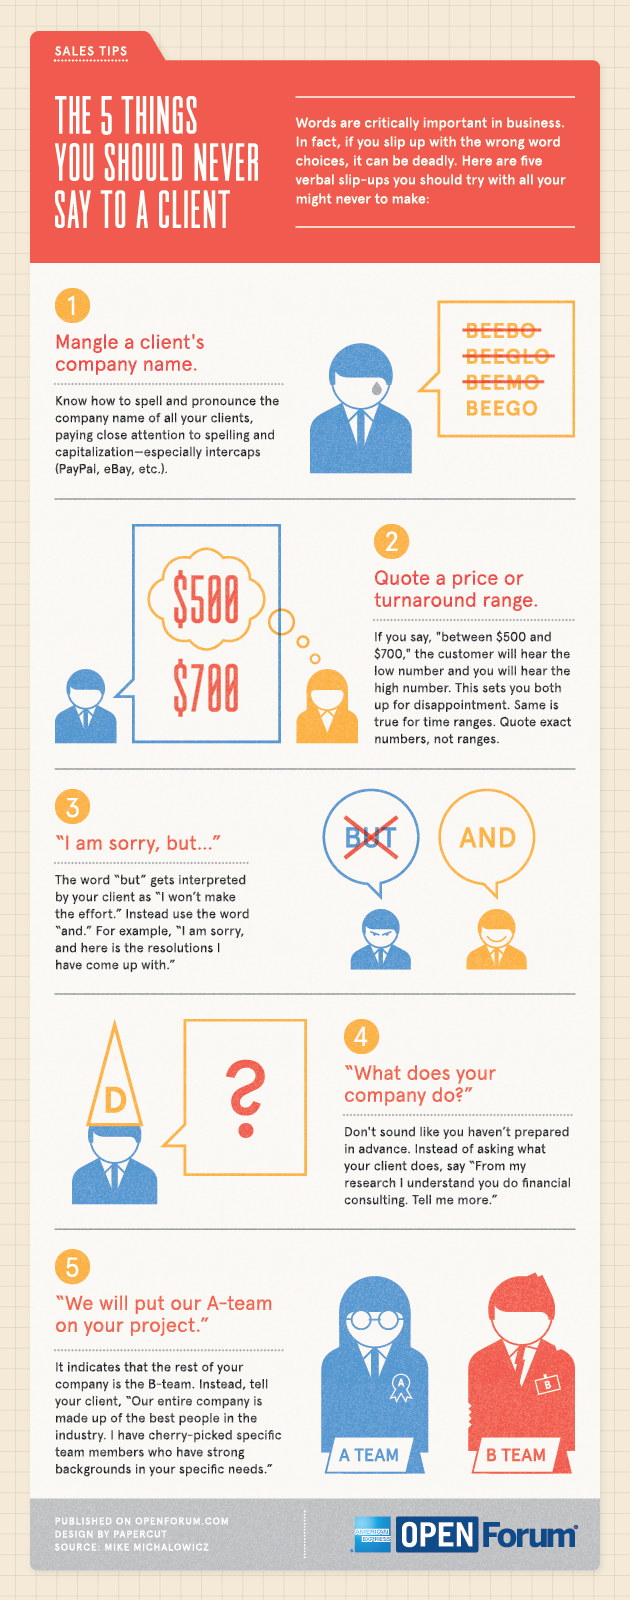 This infographic looks at some statements that could get you in hot water with a client.